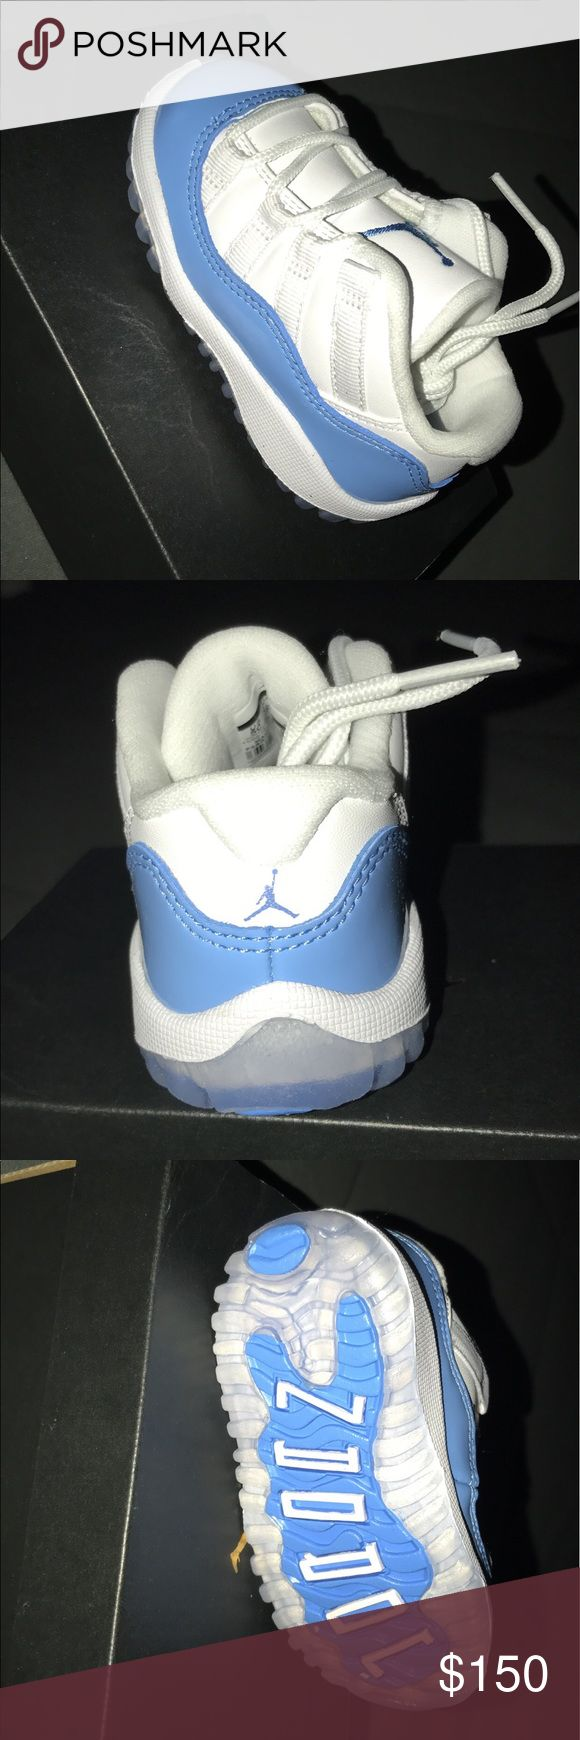 Jordan Retro 11 Low Brand New! Sold out on all major websites and stores! Jordan Shoes Sneakers